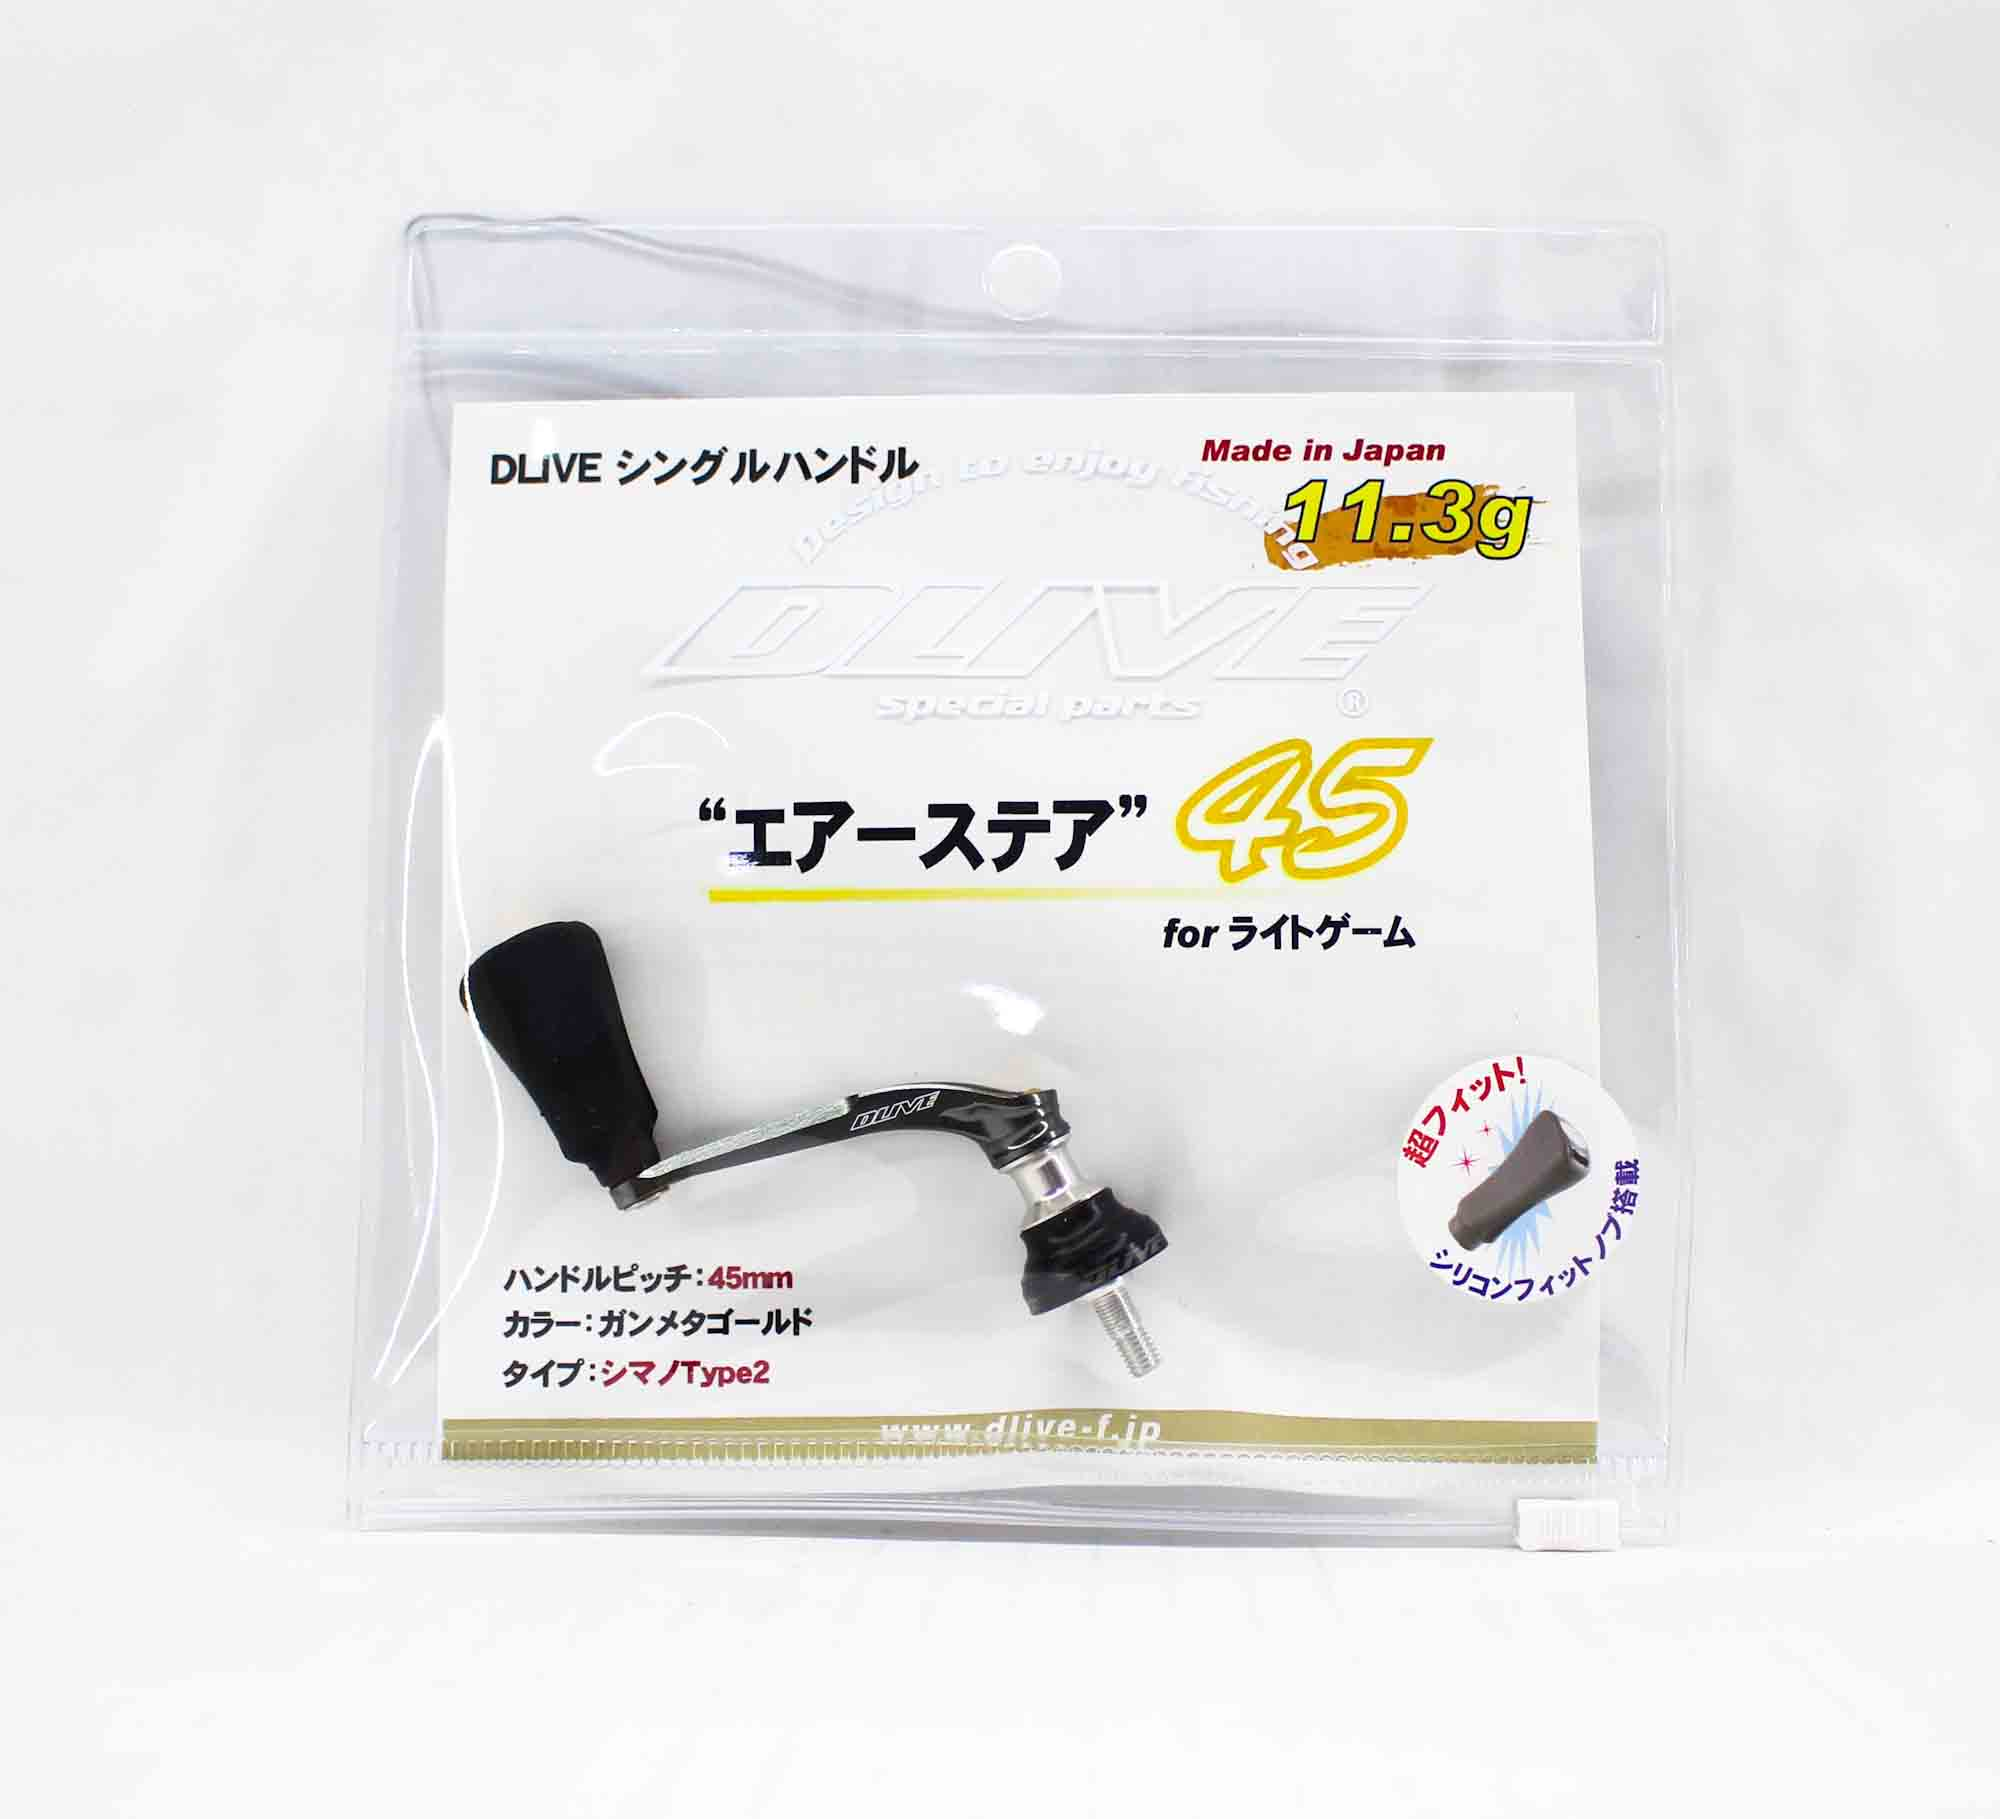 D Live Air Spinning Reel Handle Shimano Type 2 45mm 11.3 grams Gold (5845)